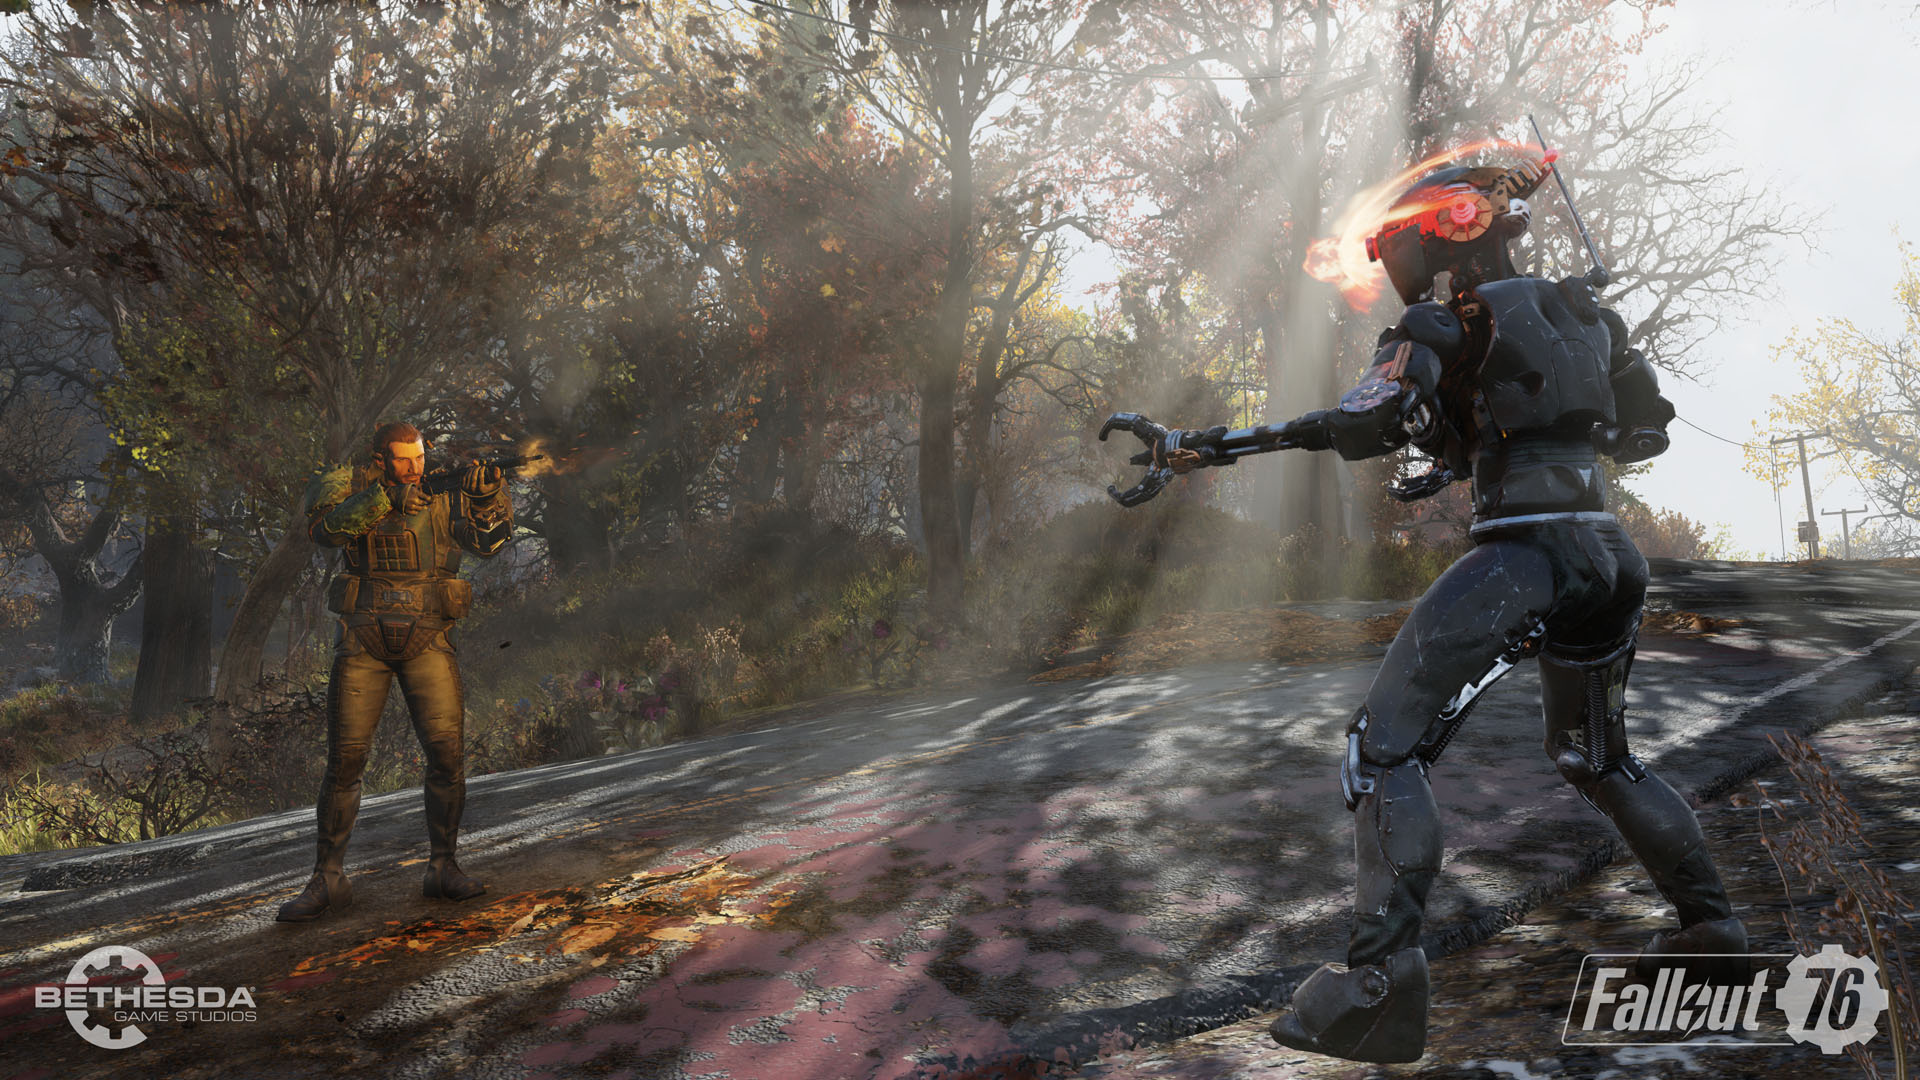 Fallout 76 | The VGProfessional Review